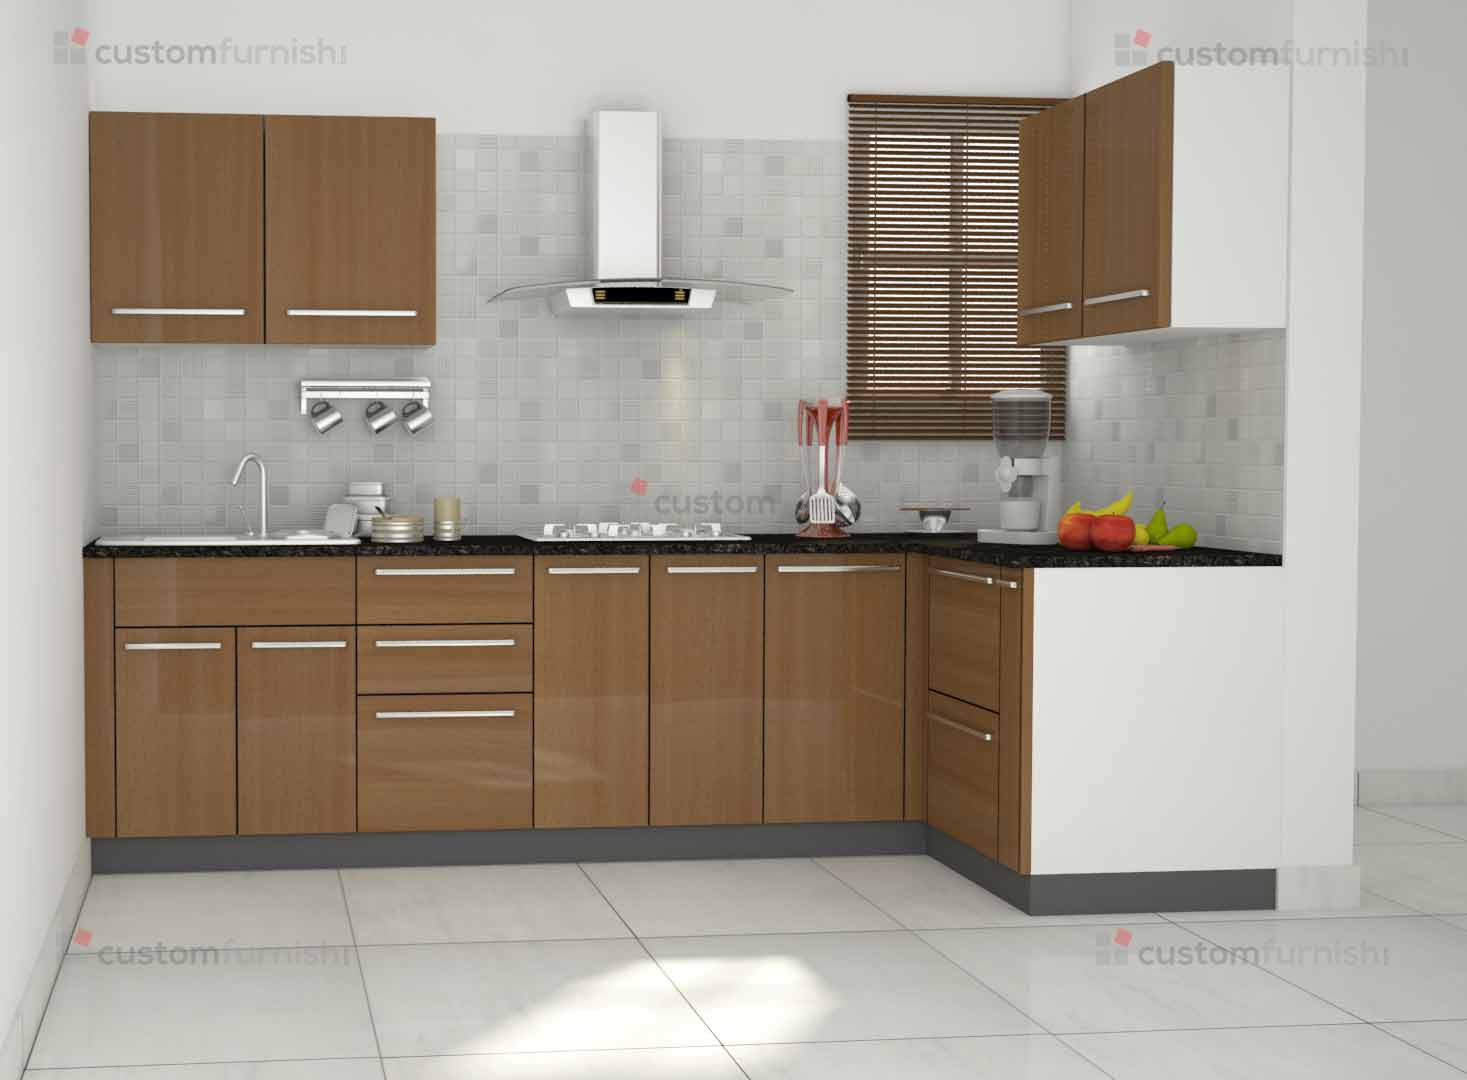 L shaped modular kitchen designs - Pics of kitchen designs ...